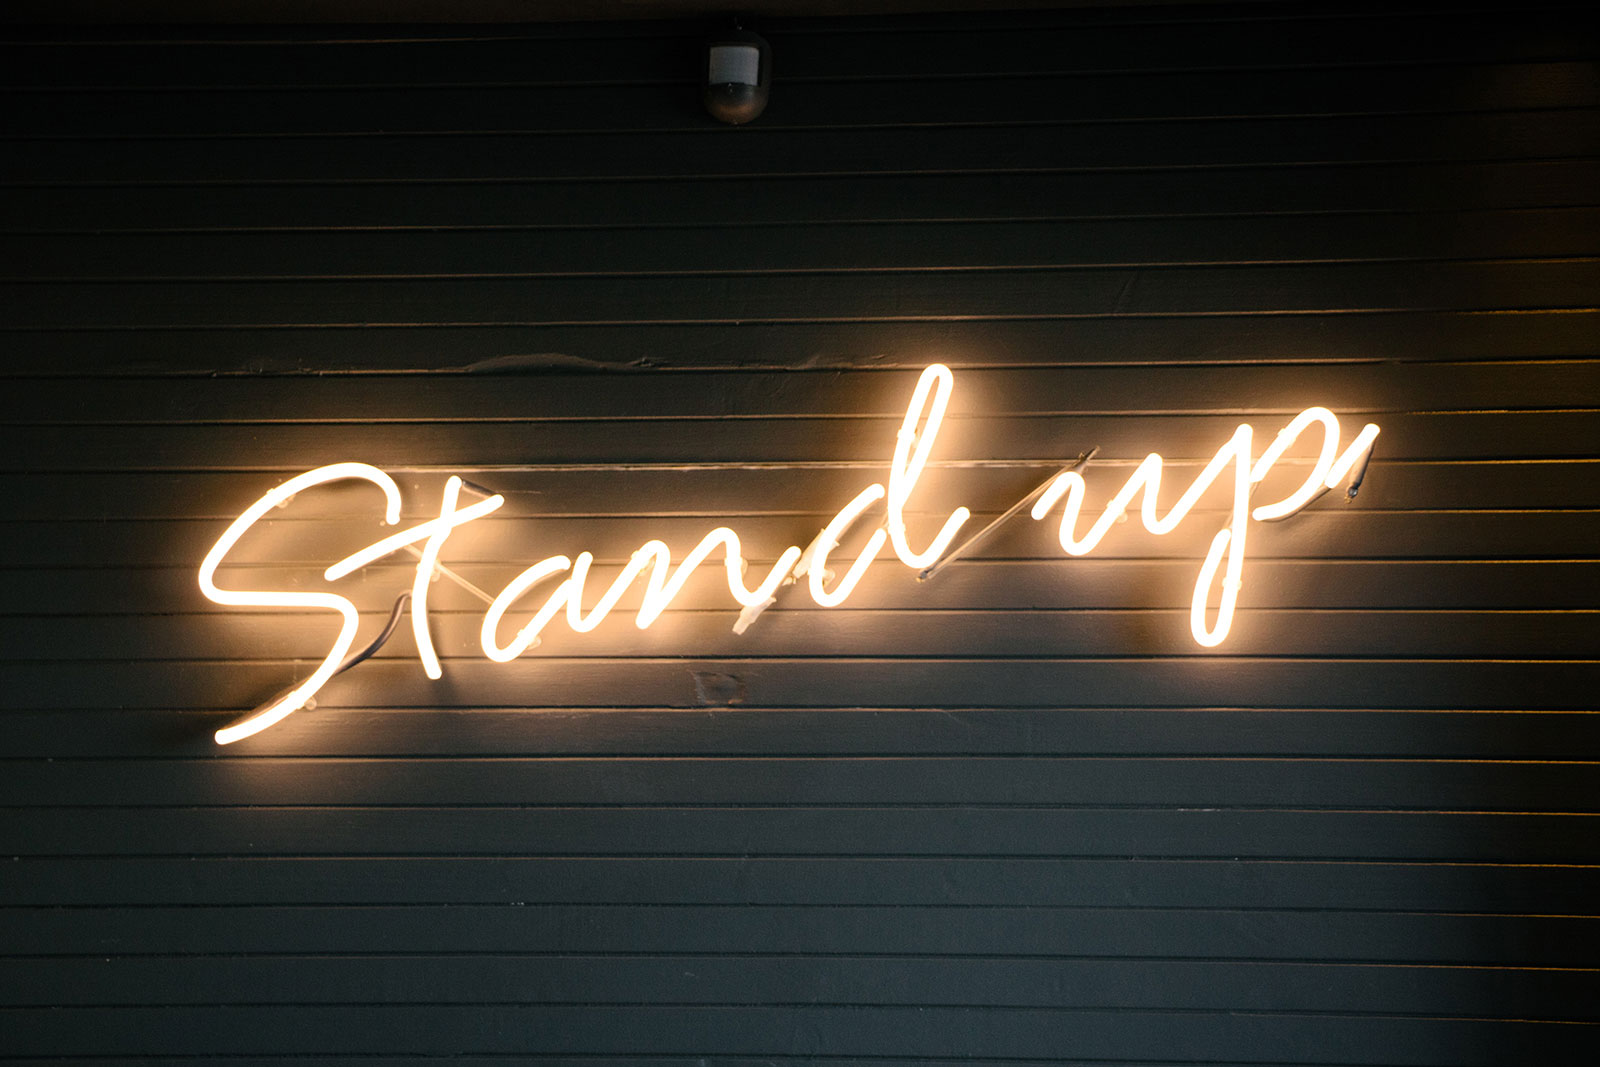 Stand up sign